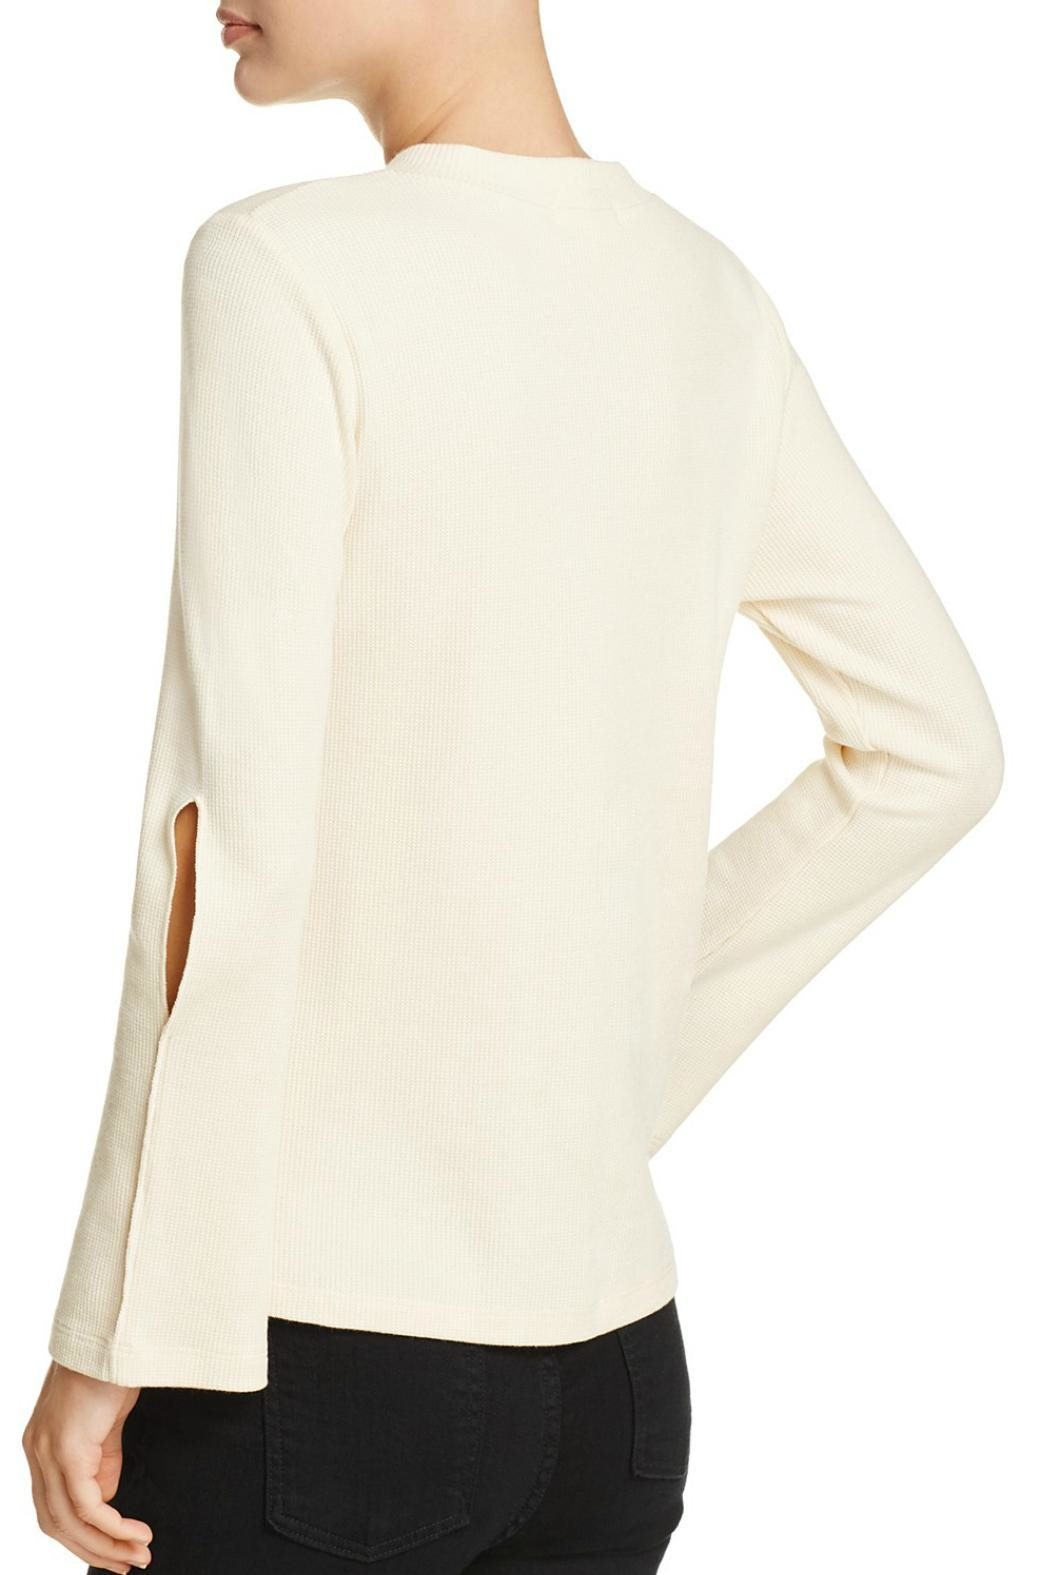 LNA Cutout Bell Sleeve Thermal - Front Full Image